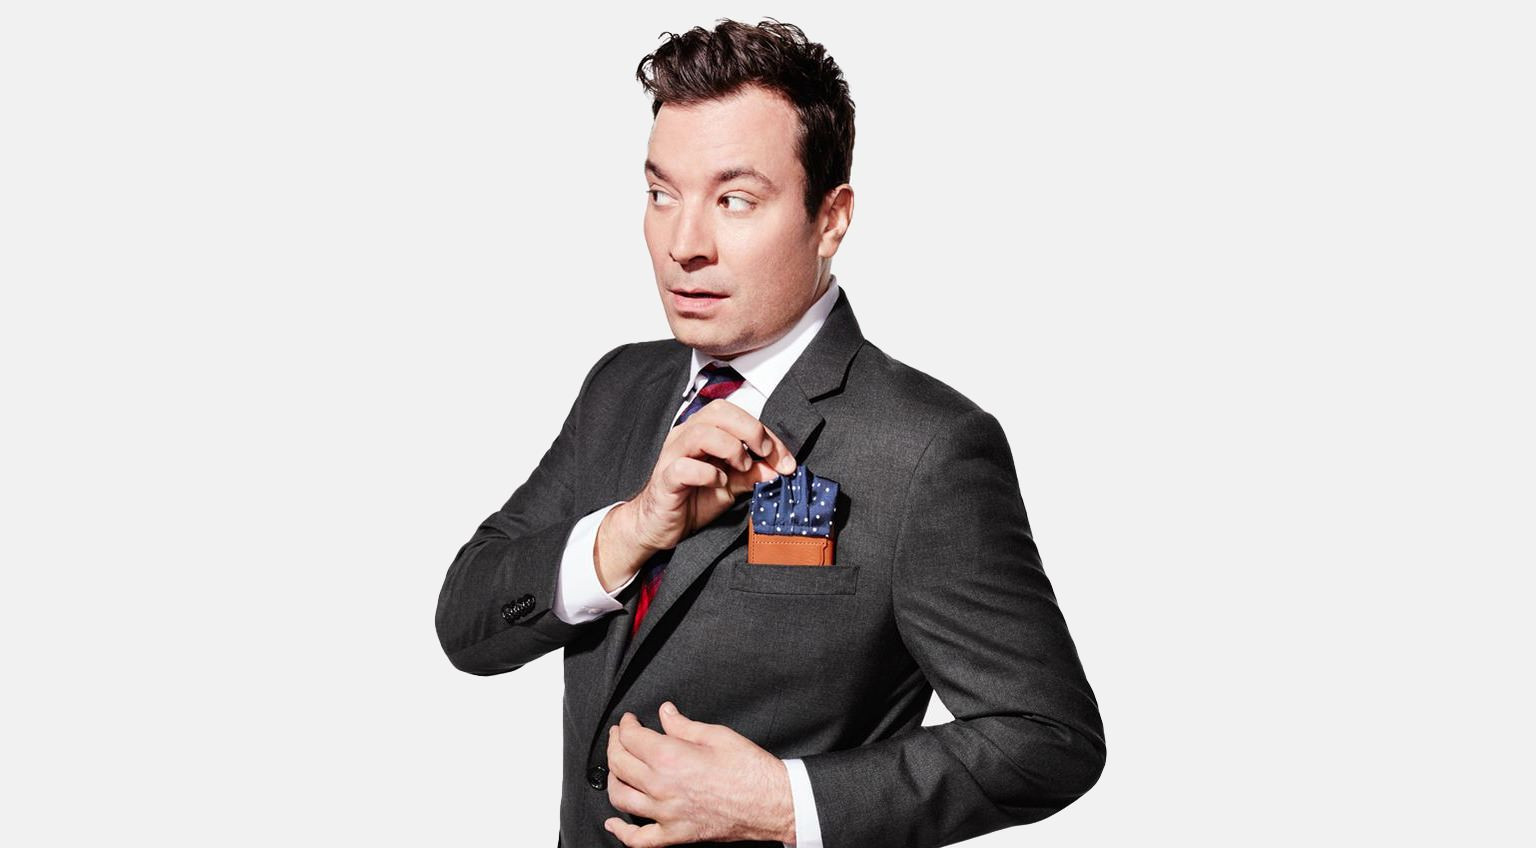 Jimmy Fallon Upgrades the iPhone - Pocket Dial | Valet.